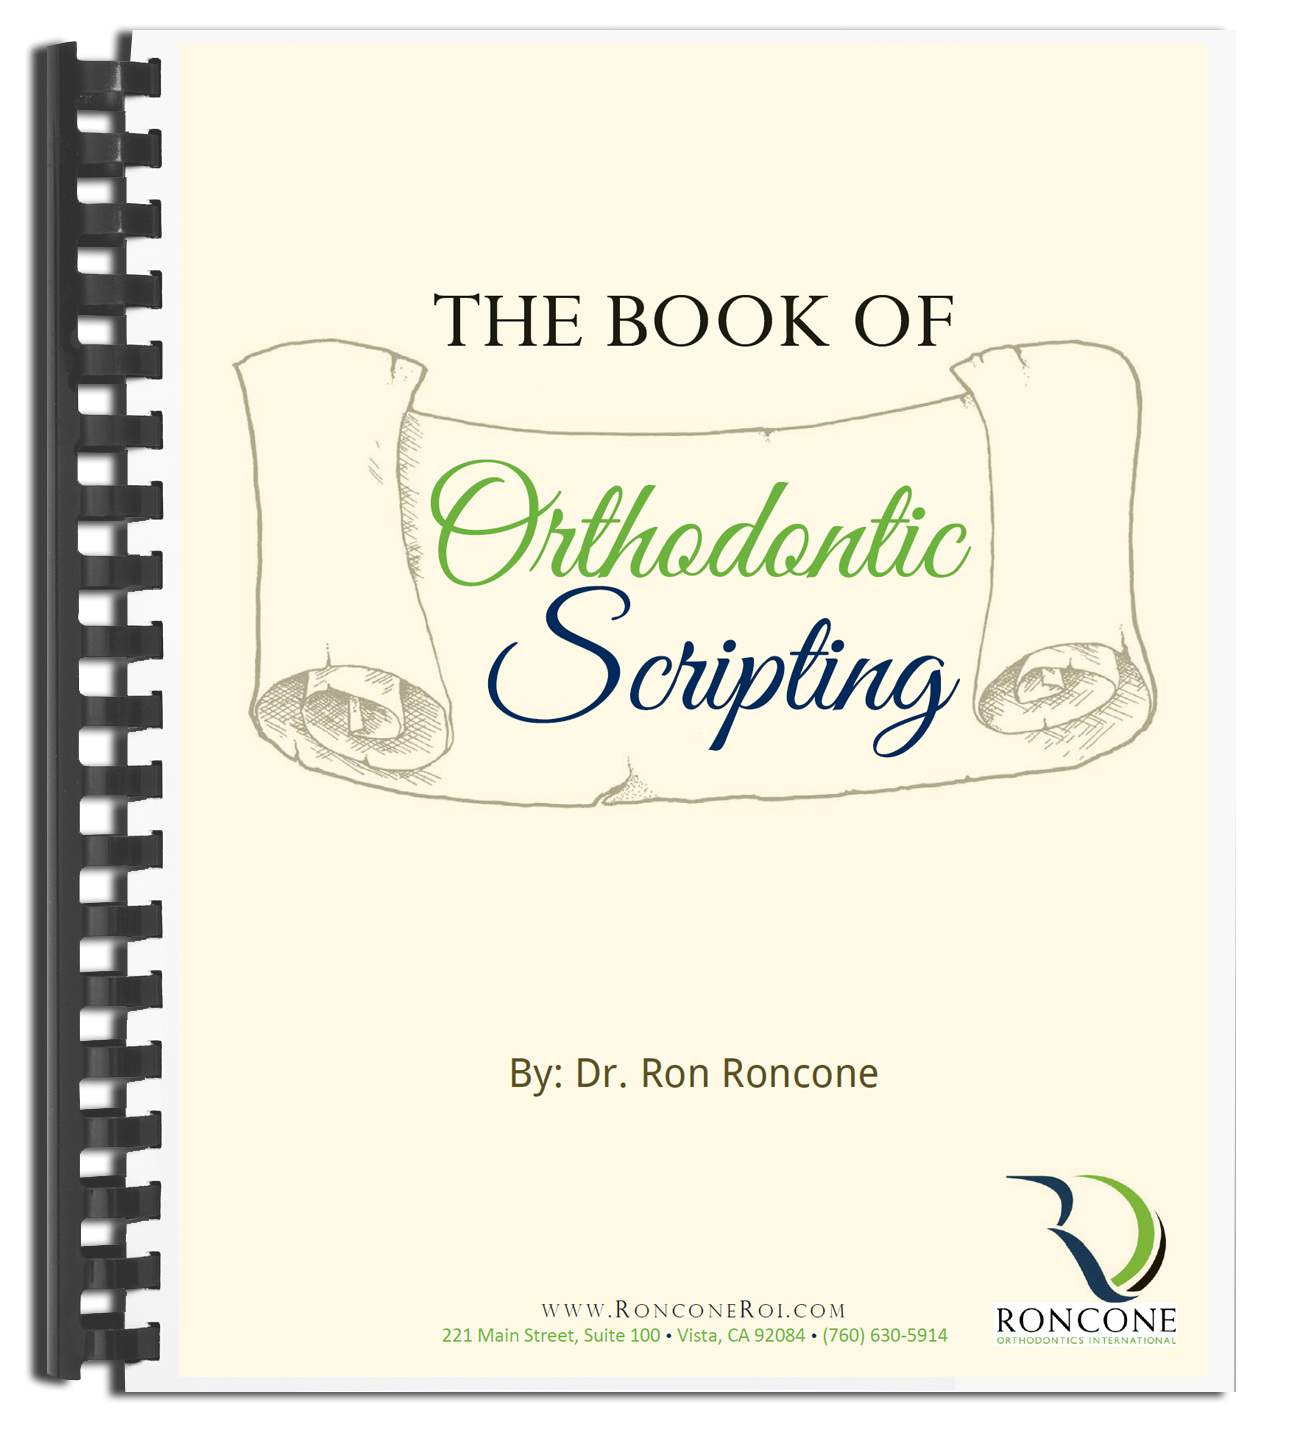 The Book Of Orthodontic Scripting